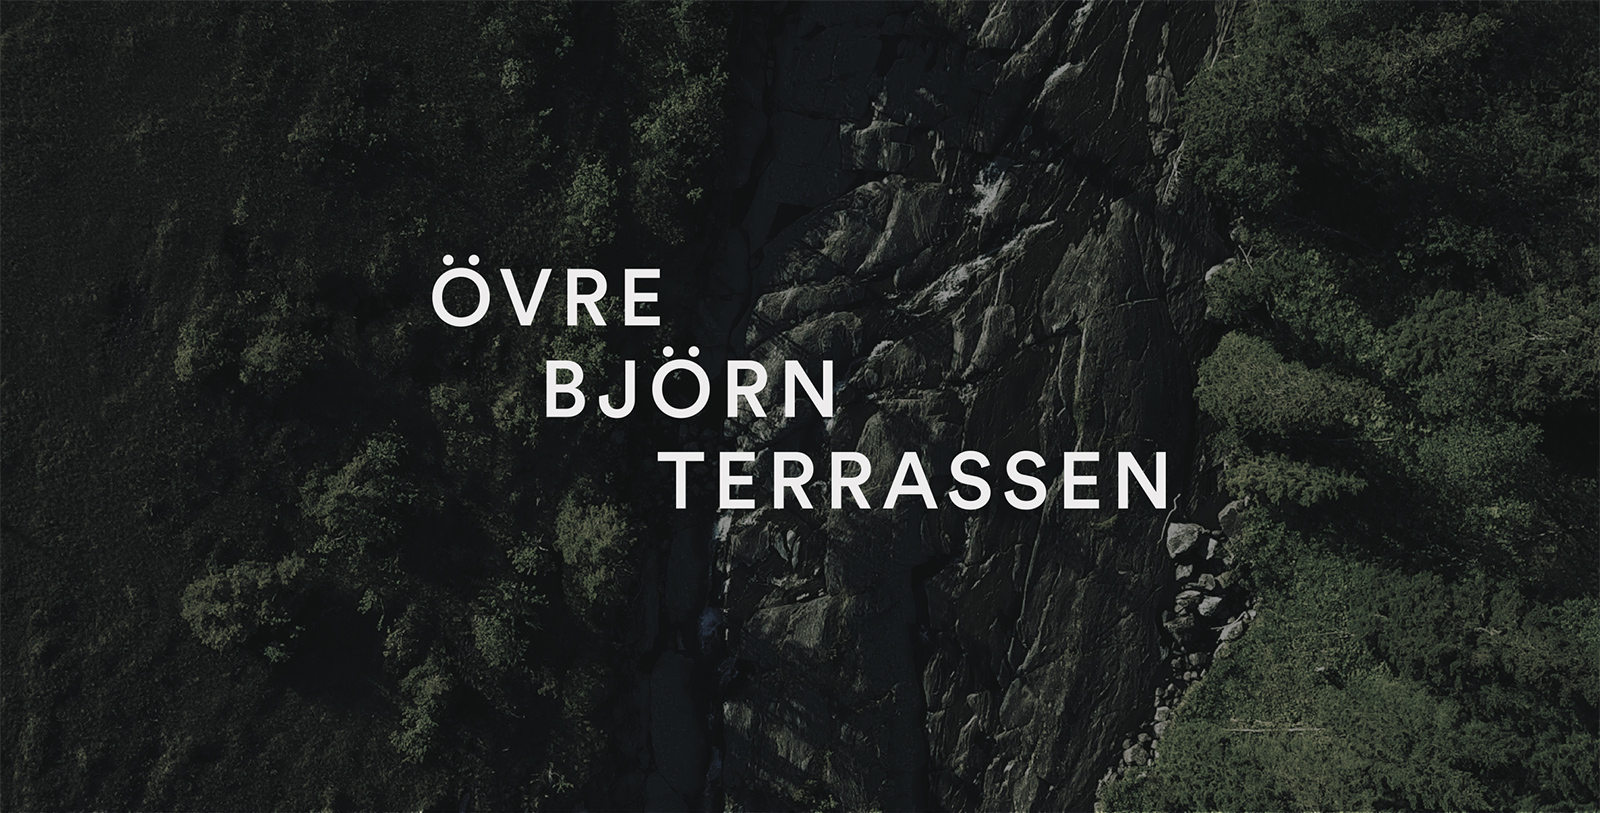 Digital design for Fahlander Architects and Övre Björnterrassen. Material from the process. The ÖBT logotype on photography.